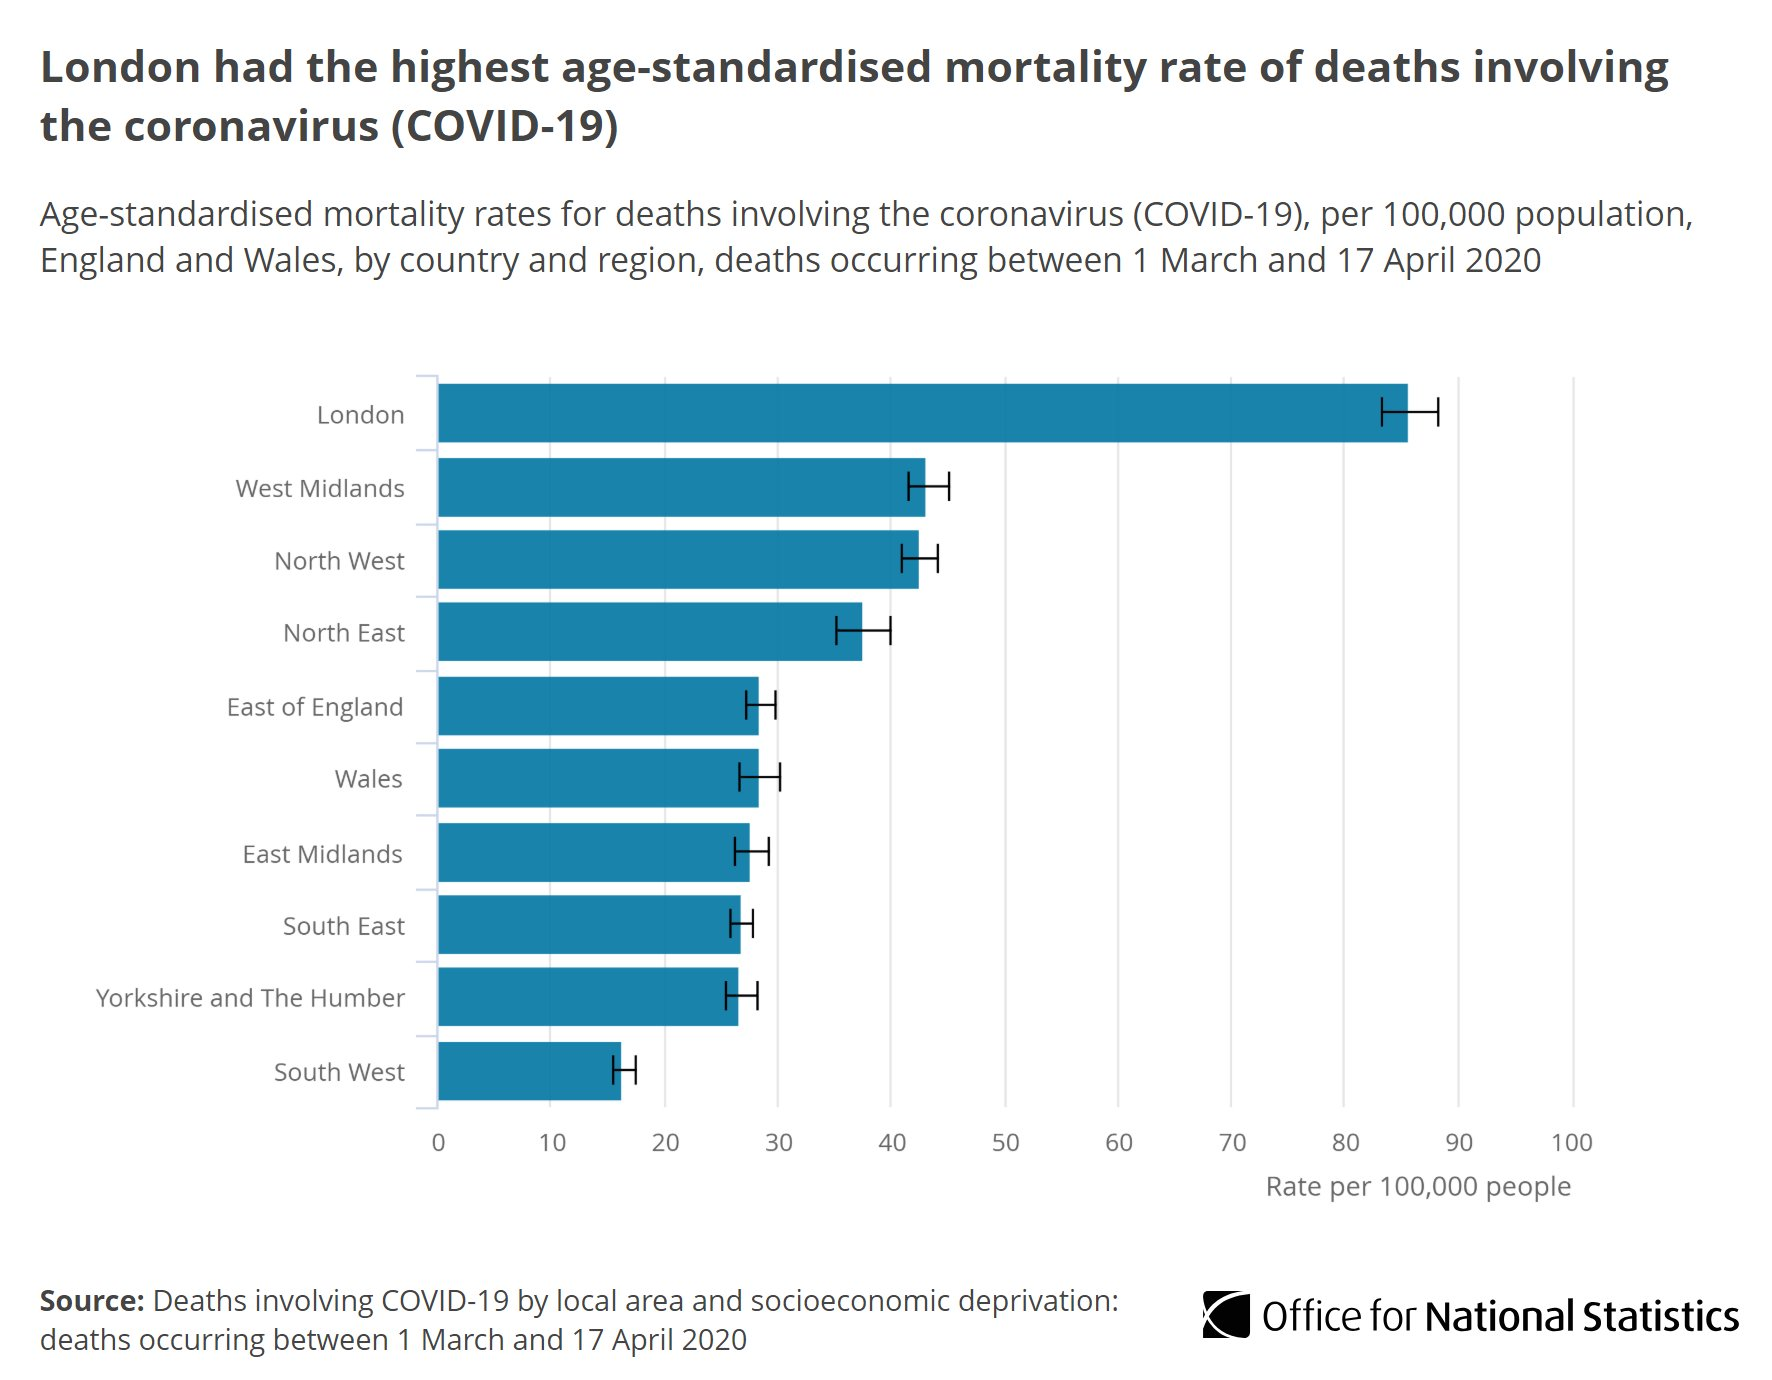 Office For National Statistics Ons On Twitter London Had The Highest Mortality Rate With 85 7 Deaths Per 100 000 Persons Involving Covid 19 Statistically Significantly Higher Than Any Other Region Https T Co Ljztrc613m Covid19 Coronavirus